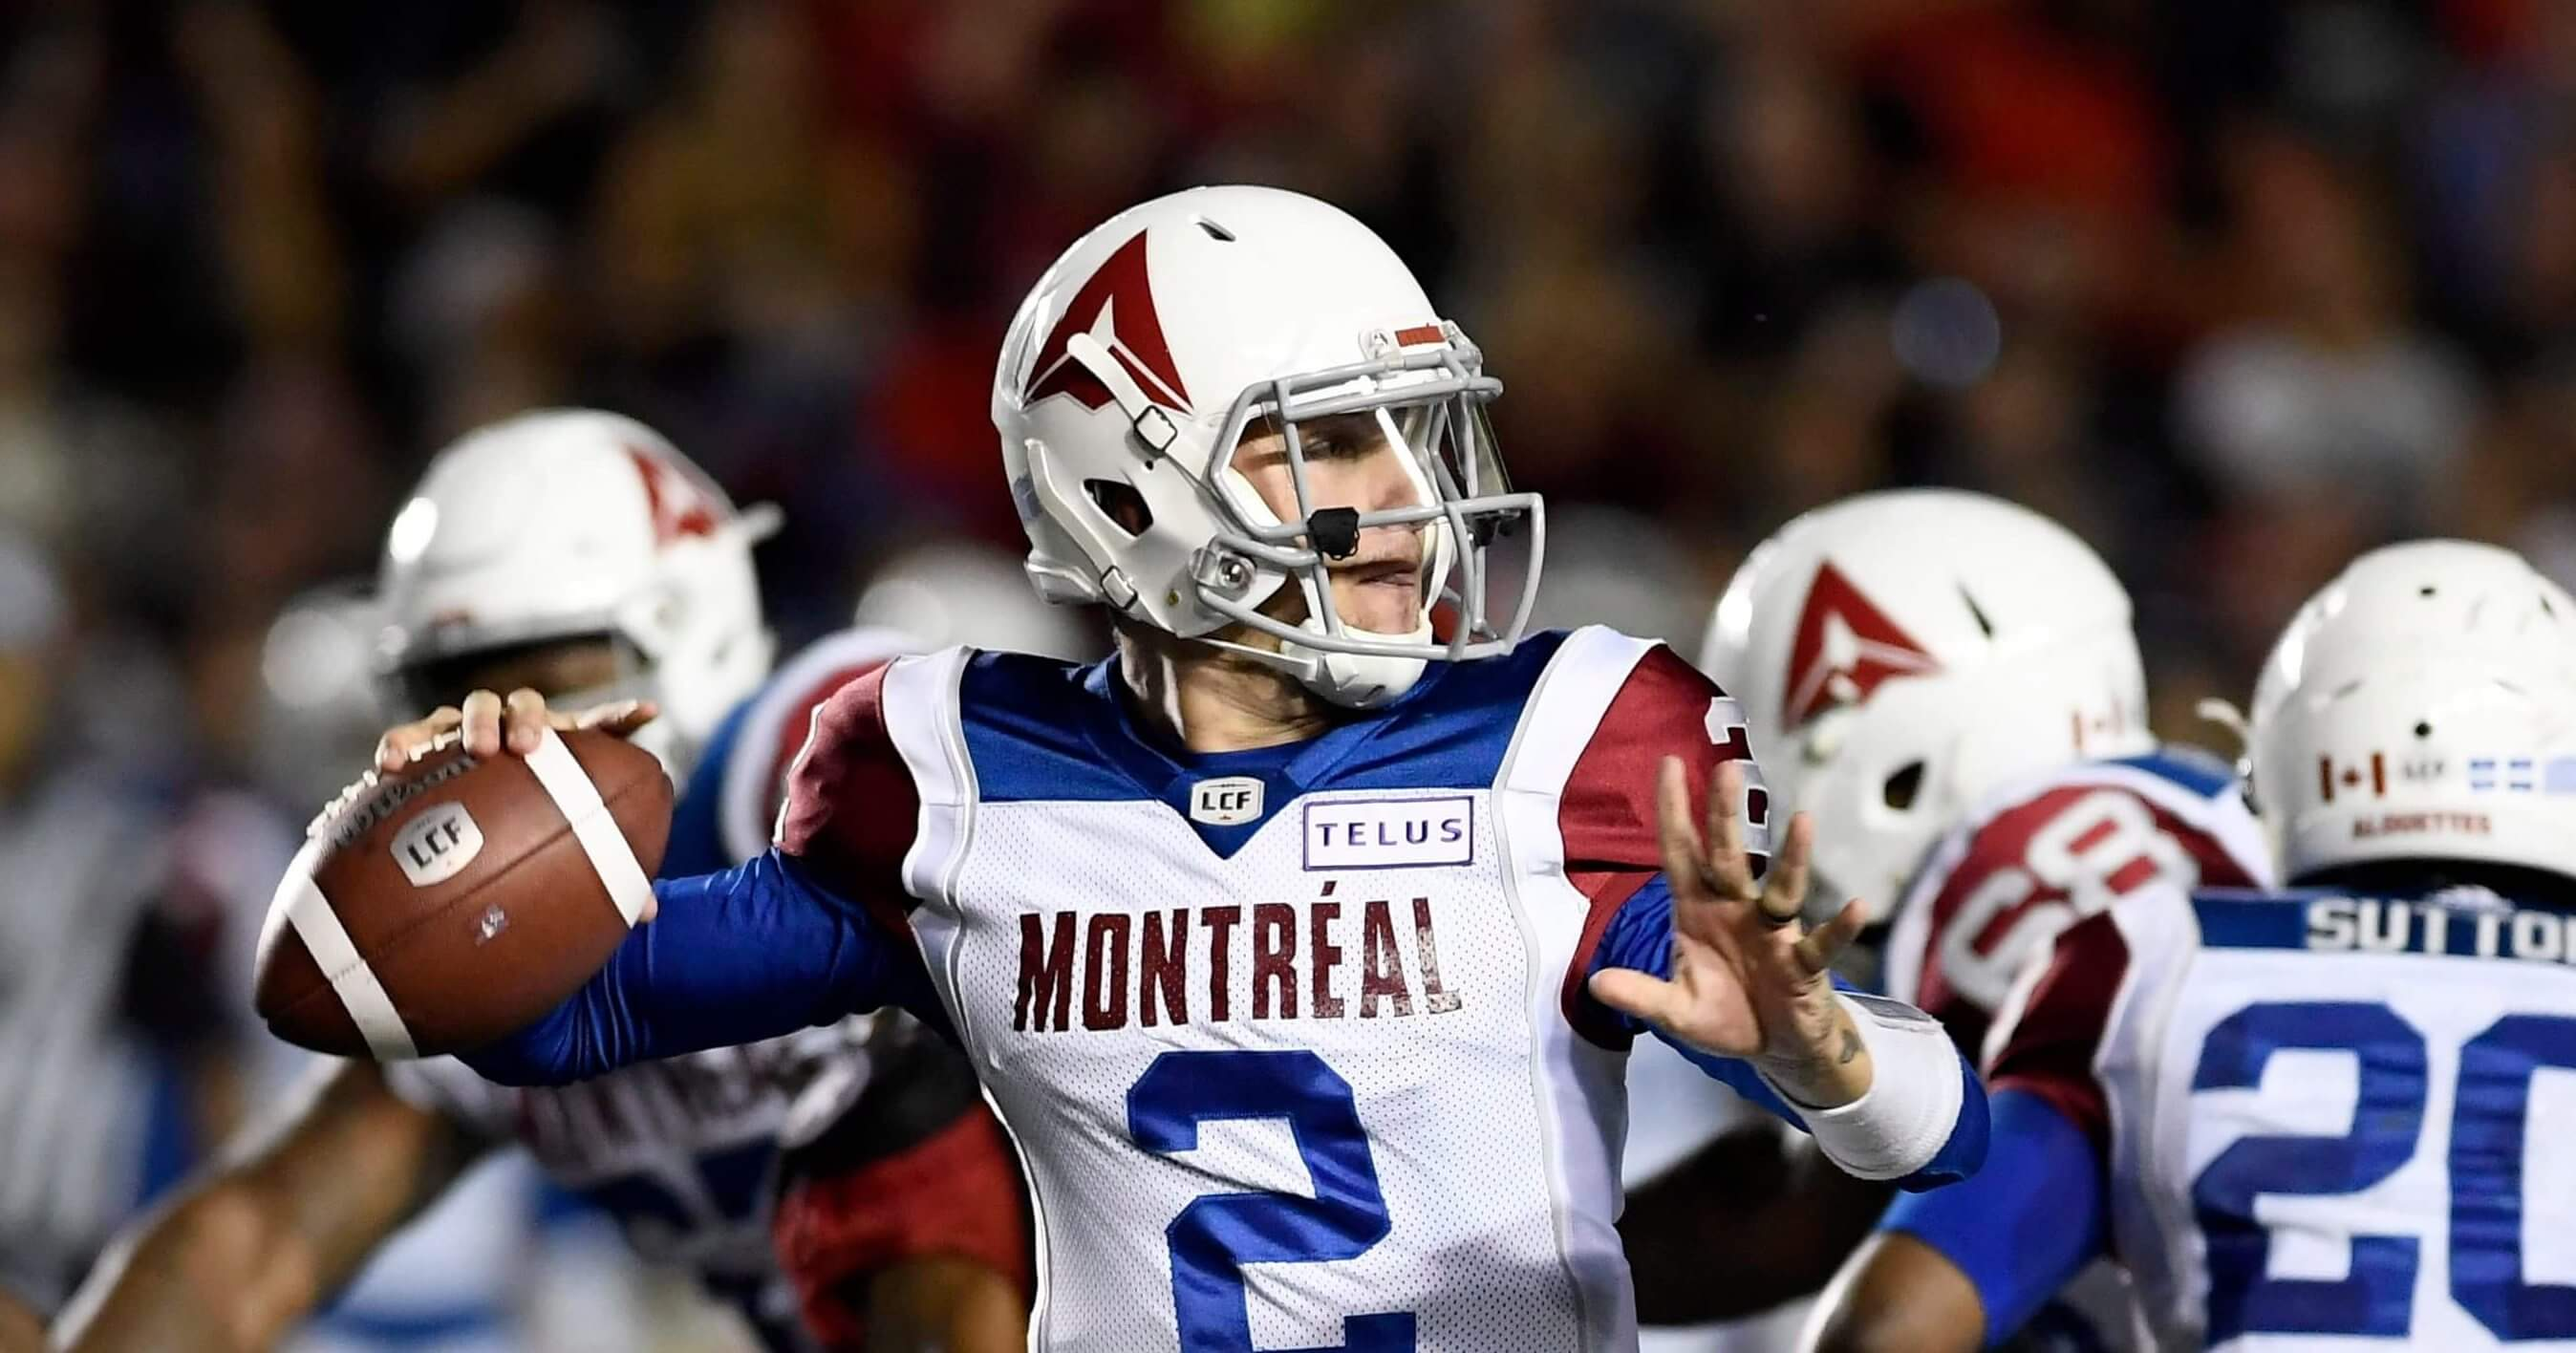 In this Saturday, Aug. 11, 2018 file photo, Montreal Alouettes quarterback Johnny Manziel (2) passes during first-half CFL football game action against the Ottawa Redblacks in Ottawa, Ontario.